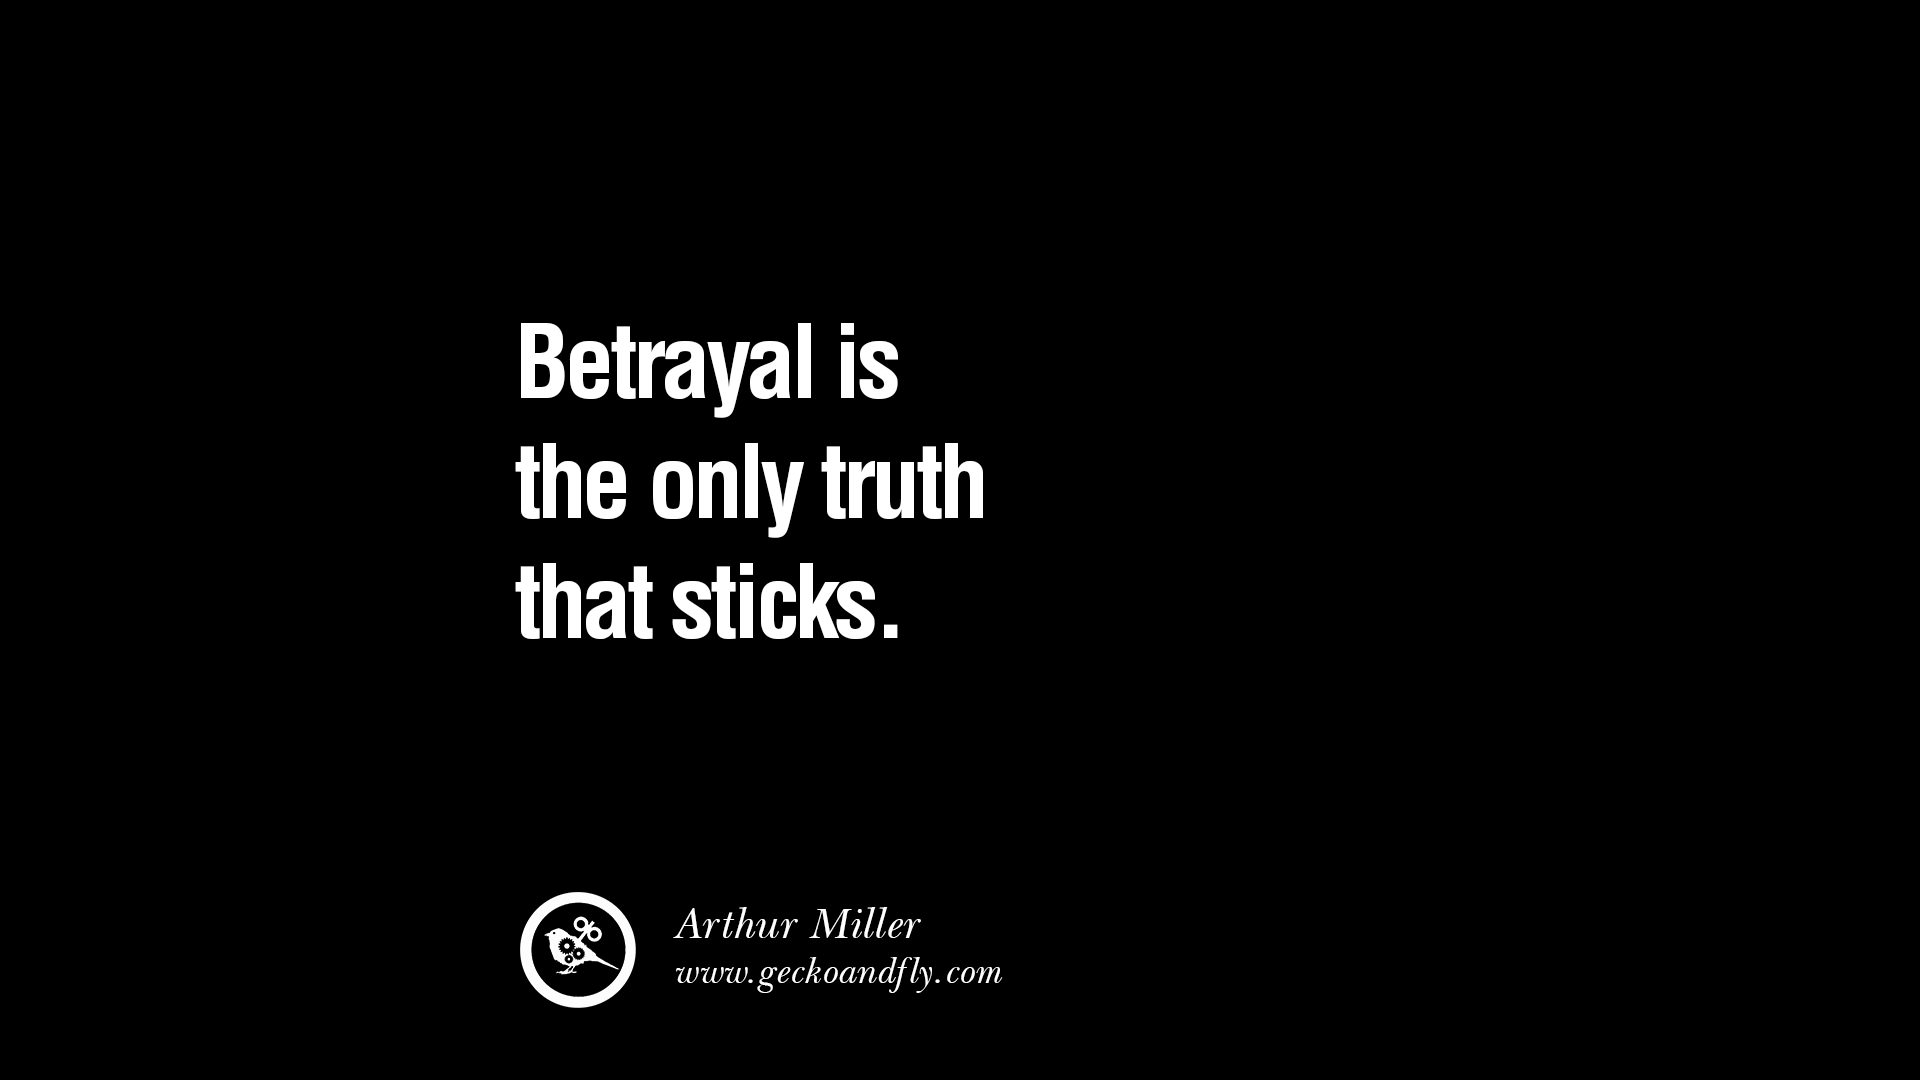 Fathers Betrayal Quotes And Sayings Quotesgram: Betrayal Of Trust Quotes. QuotesGram